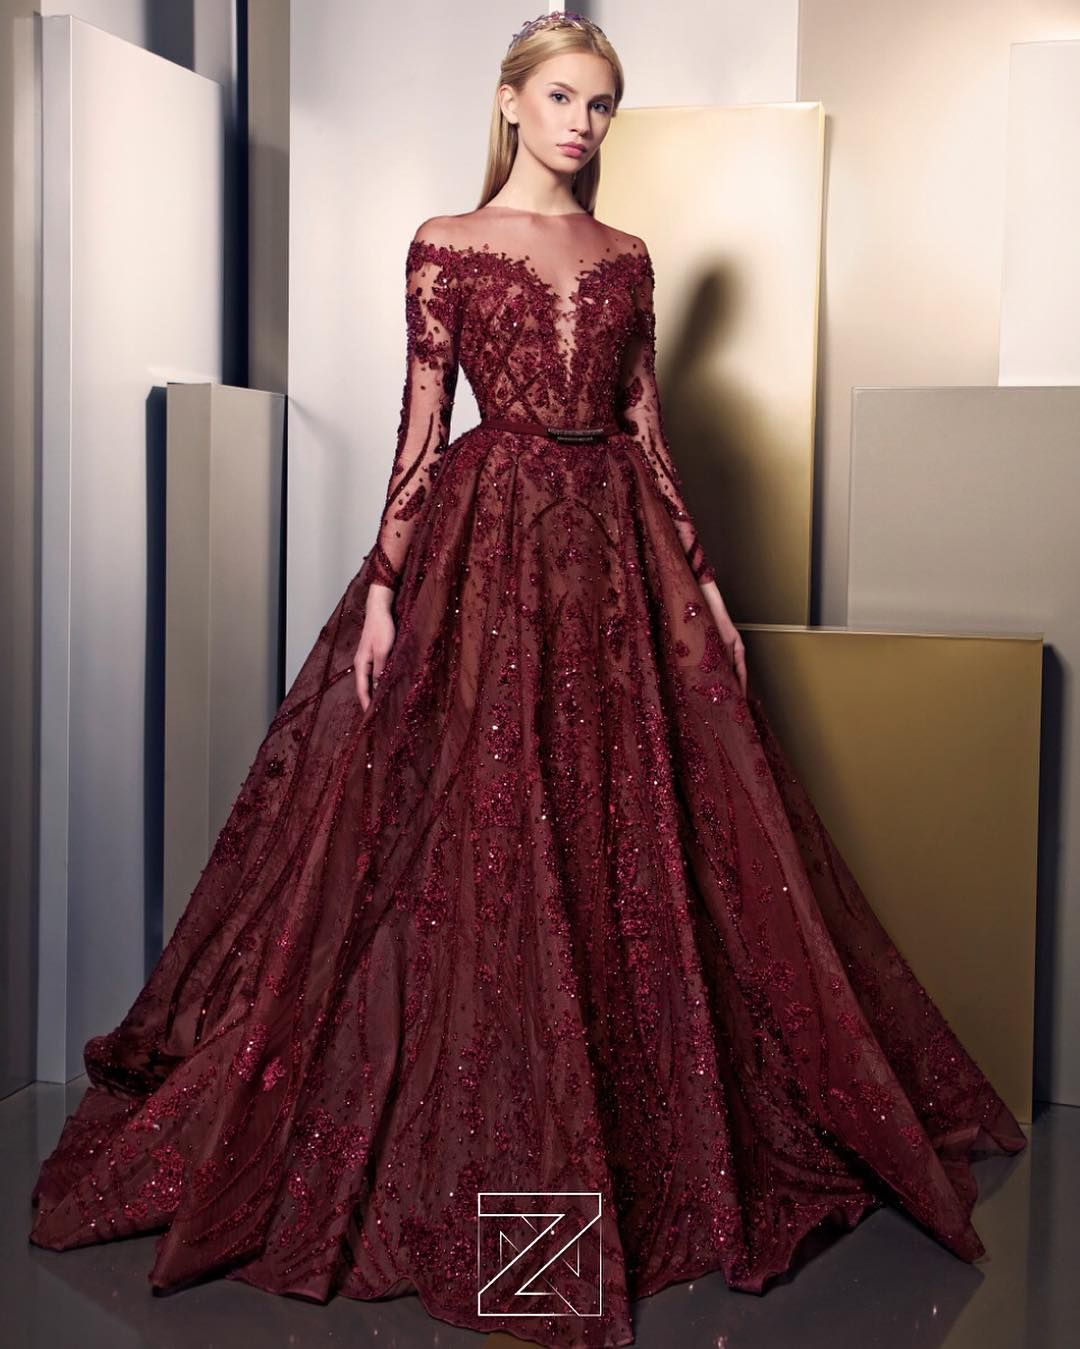 6 524 Likes 228 Comments Ziad Nakad Ziadnakad On Instagram Znsignature2016 024 Haute Prom Dresses With Sleeves Gowns Prom Dresses Long With Sleeves